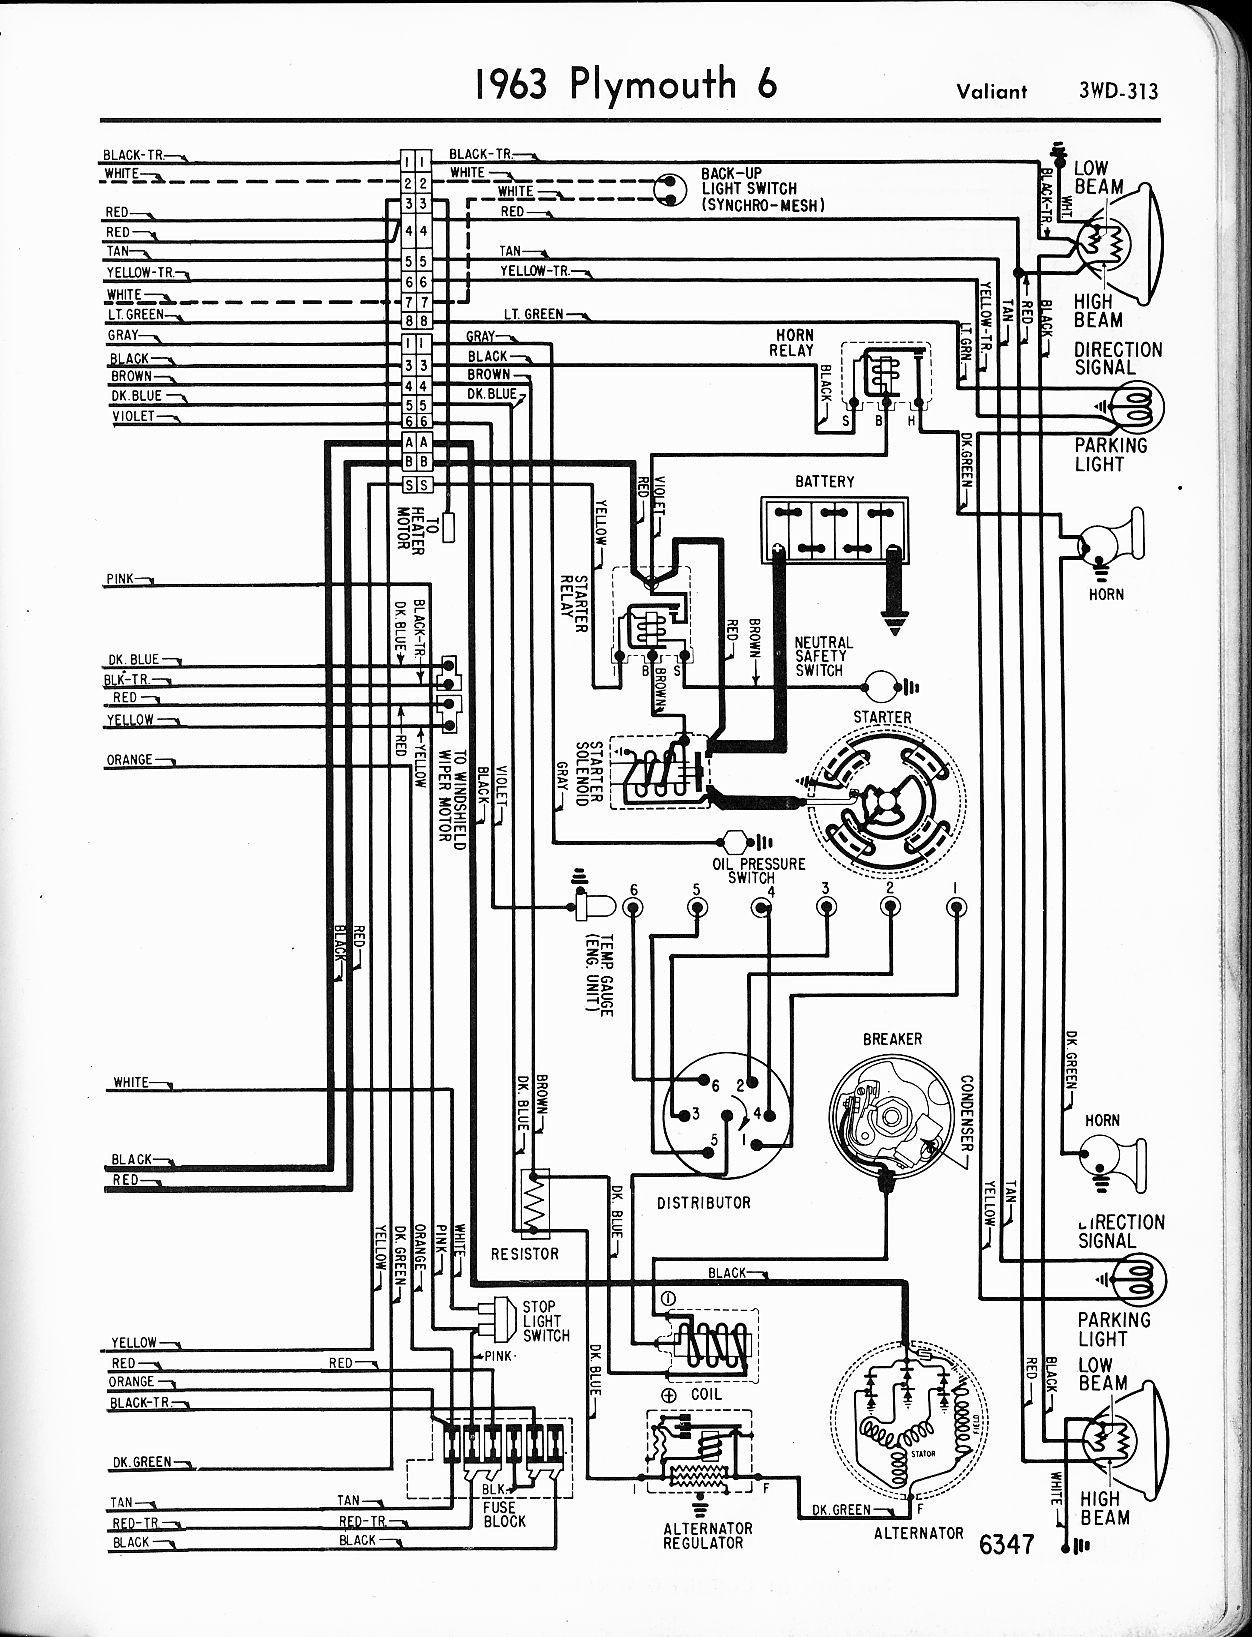 New House Wiring Diagram south Africa #diagram #diagramsample  #diagramtemplate Check more at https://morningcultur… | House wiring,  Diagram, Basic electrical wiringPinterest